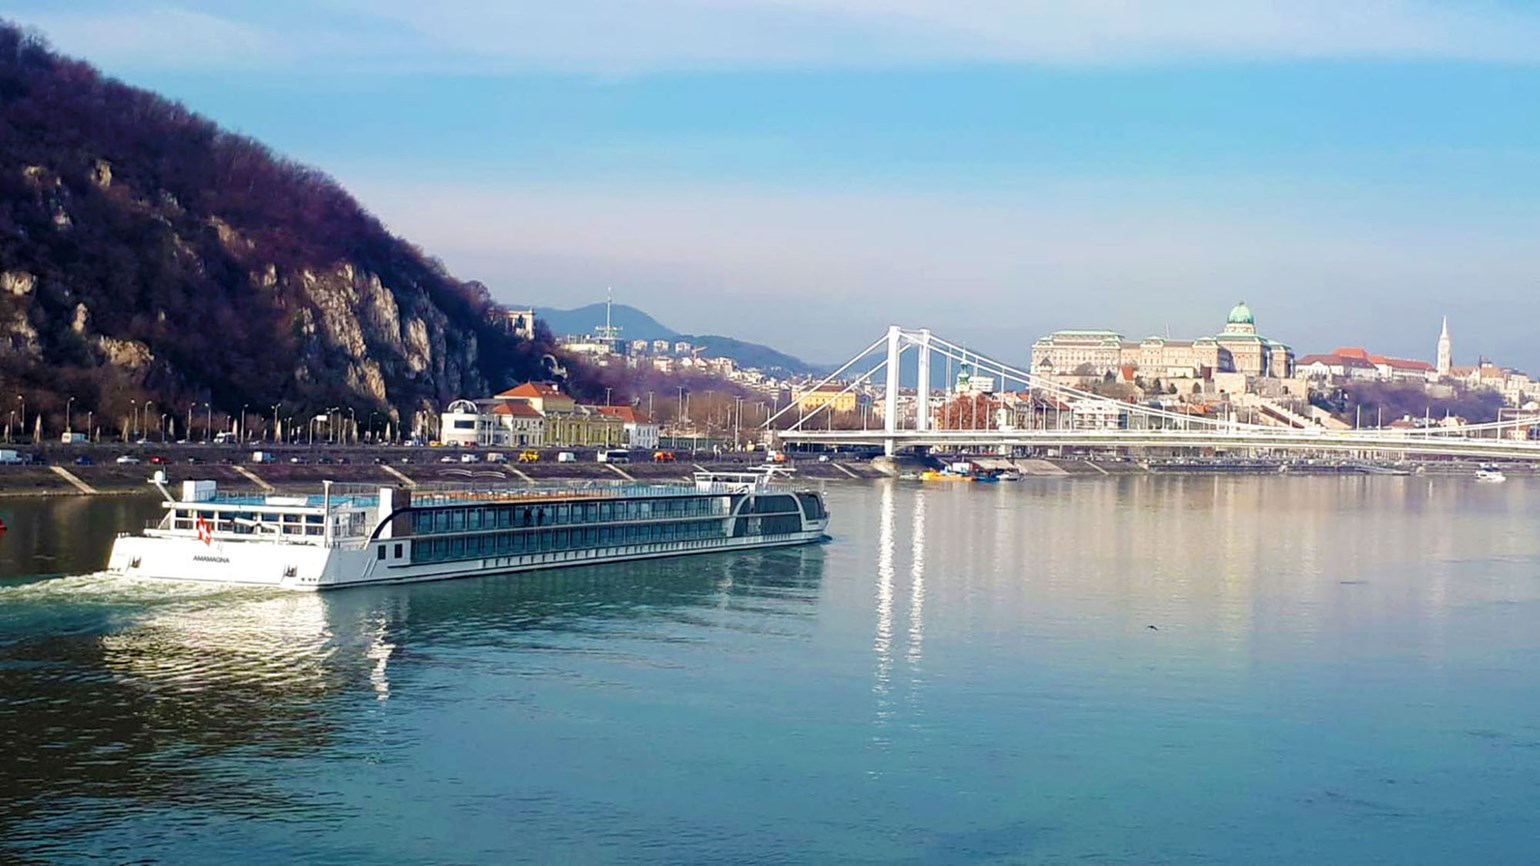 AmaWaterways adds a second seven-river cruise